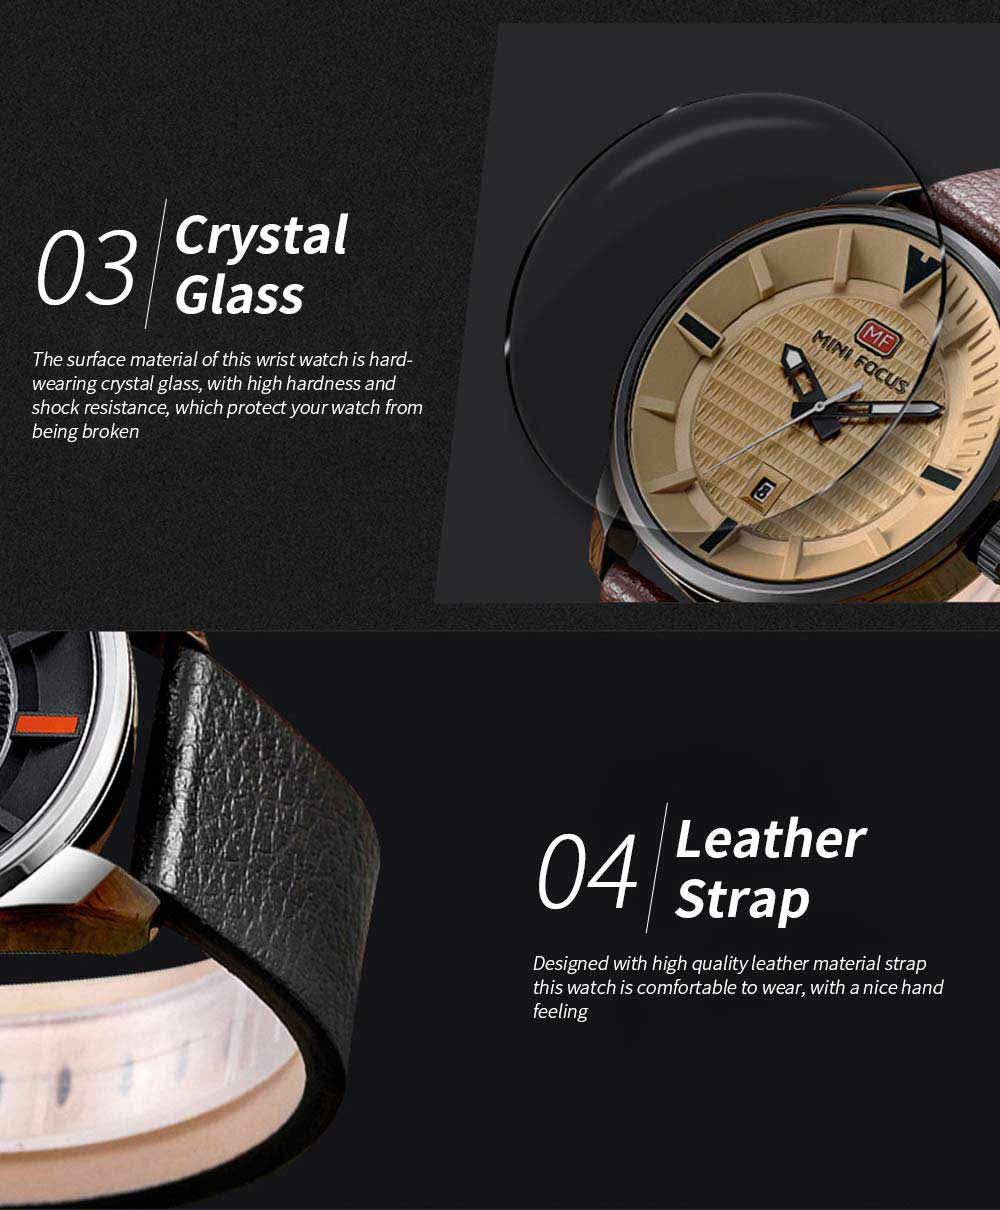 MINI FOCUS Men's Watch with Japanese Movement, High Quality Quartz Watch with Leather Strap Waterproof 30M 2